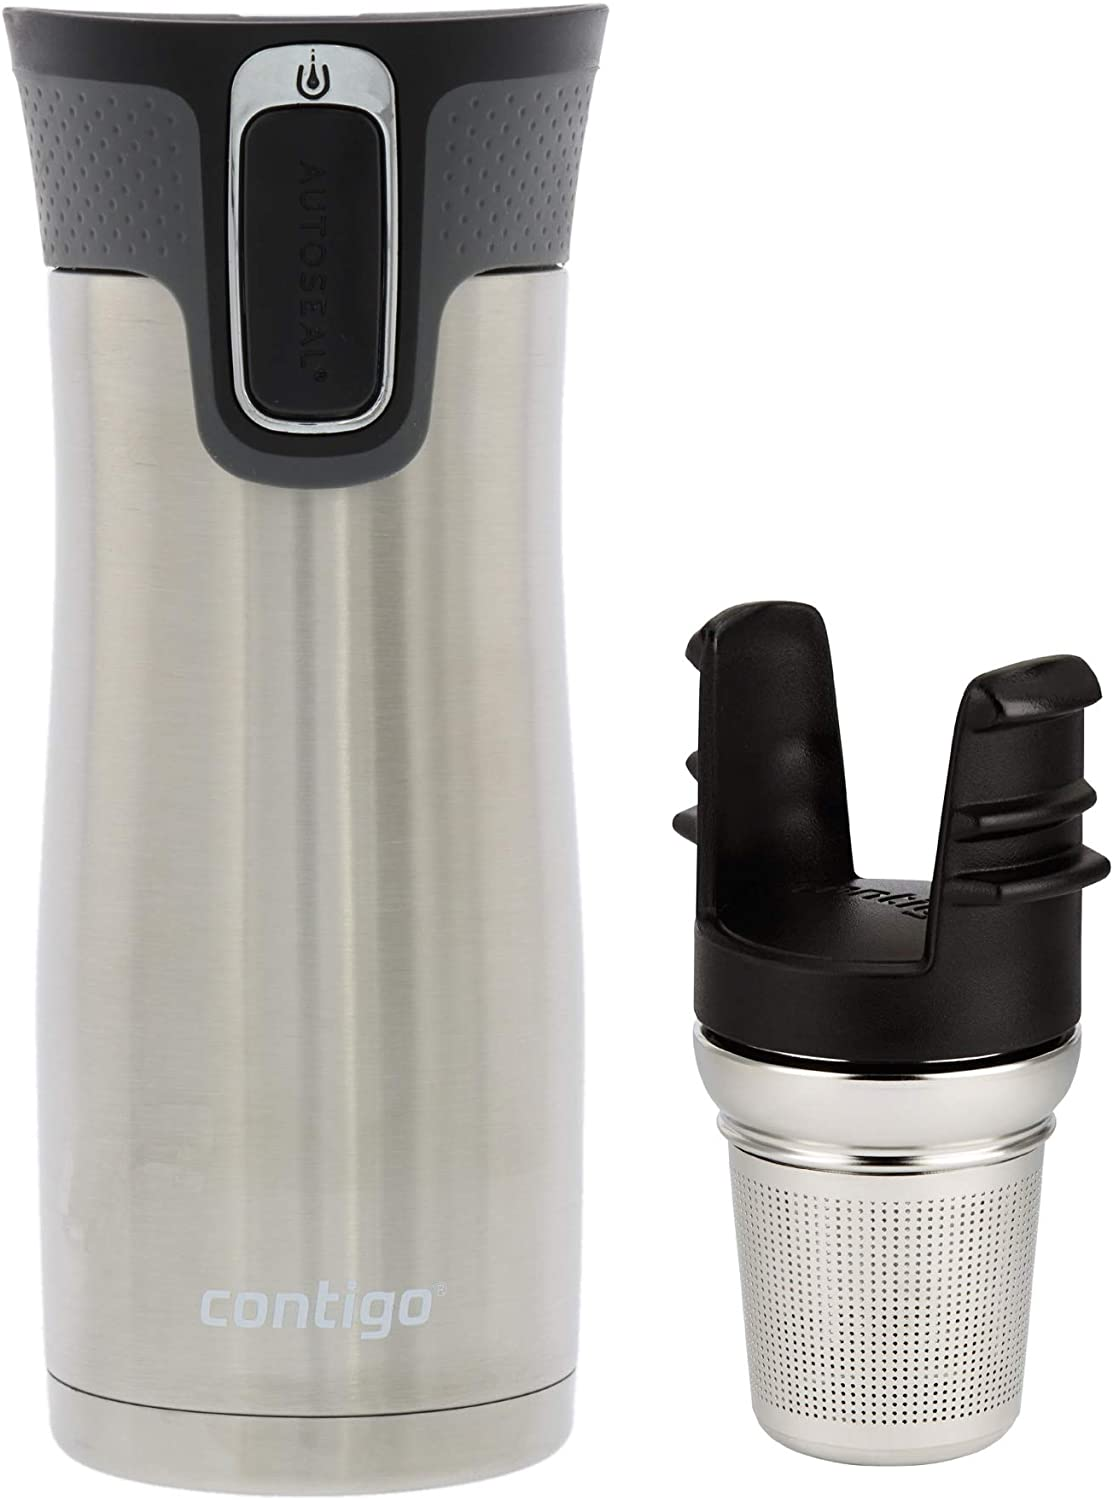 Contigo Autoseal West Loop, 16 oz with Contigo Stainless Steel Tea Infuser – Vacuum Insulated Stainless Steel Thermal Coffee Travel Mug – Autoseal Prevents Spills and Leaks